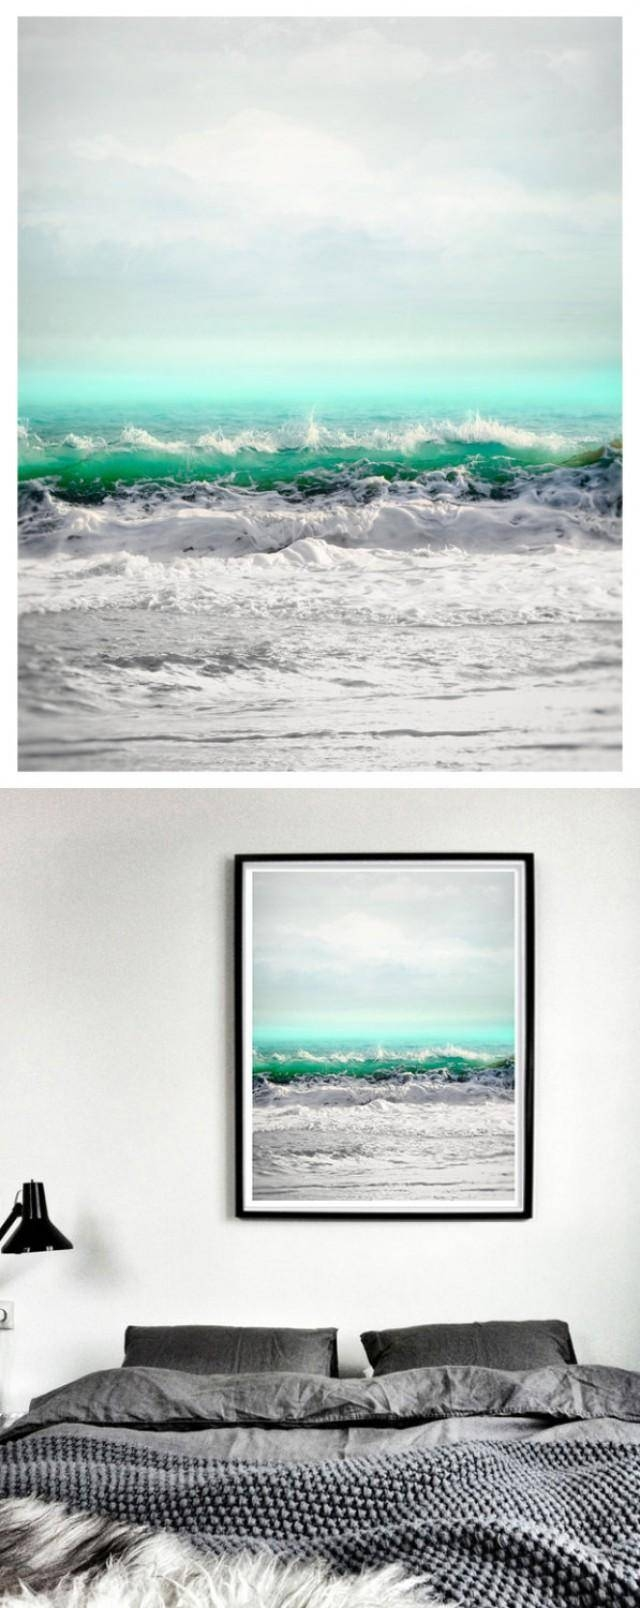 Sea Art Print, Extra Large Wall Art, Seascape Art, Oversized Ocean For Latest Coastal Wall Art (View 11 of 12)